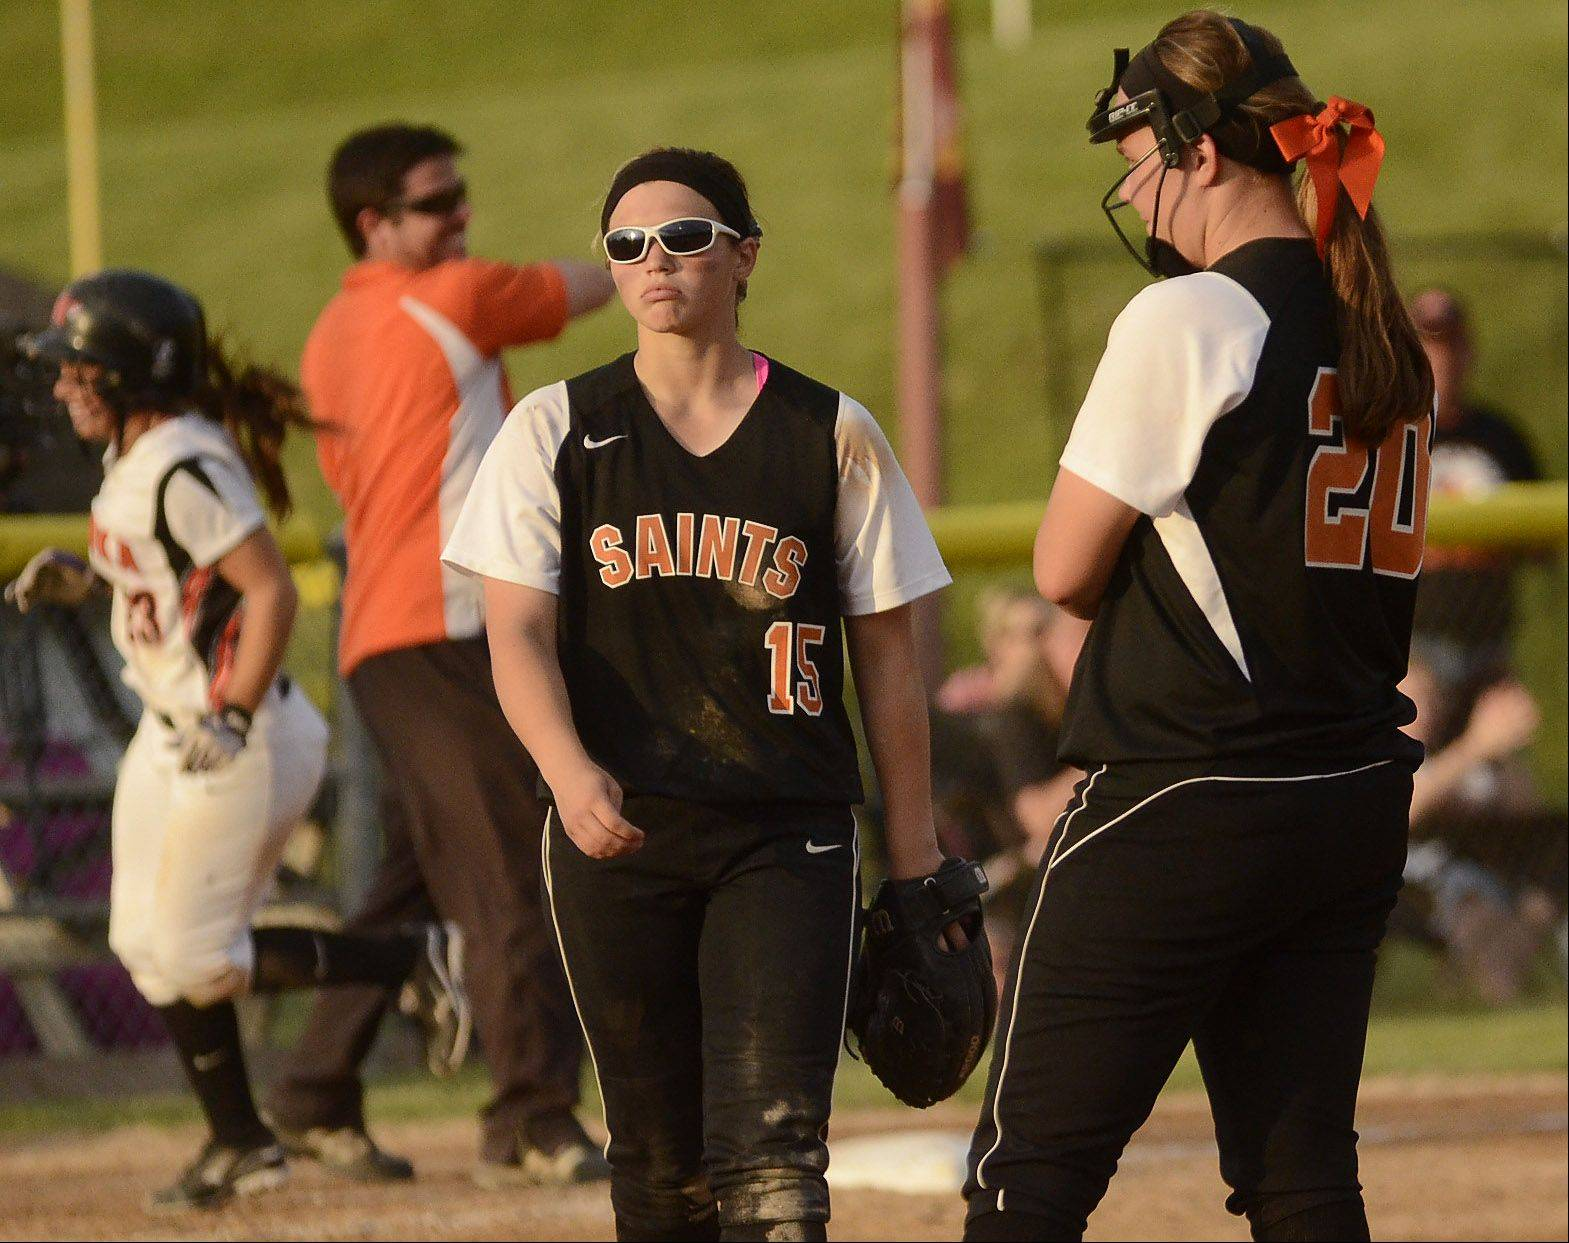 St. Charles East third baseman Alex Latoria and pitcher Haley Beno watch dejectedly as Minooka's Jordyn Larsen rounds the bases during her 5th inning home run as Minooka routs St. Charles East 14-3 in the Class 4A softball championship game.